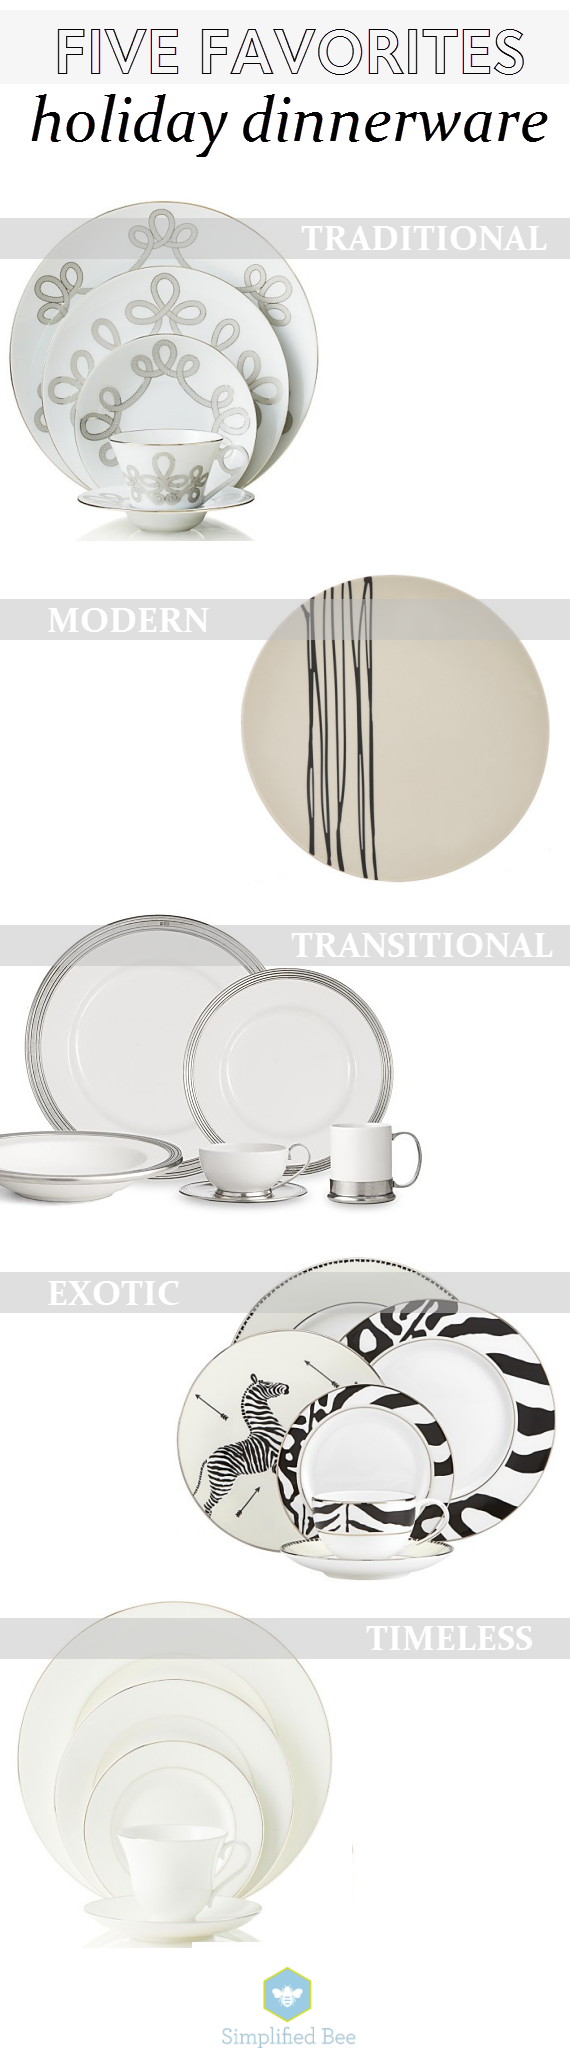 favorite holiday dinnerware // simplified bee #tablescape #holiday2014 #thanksgiving